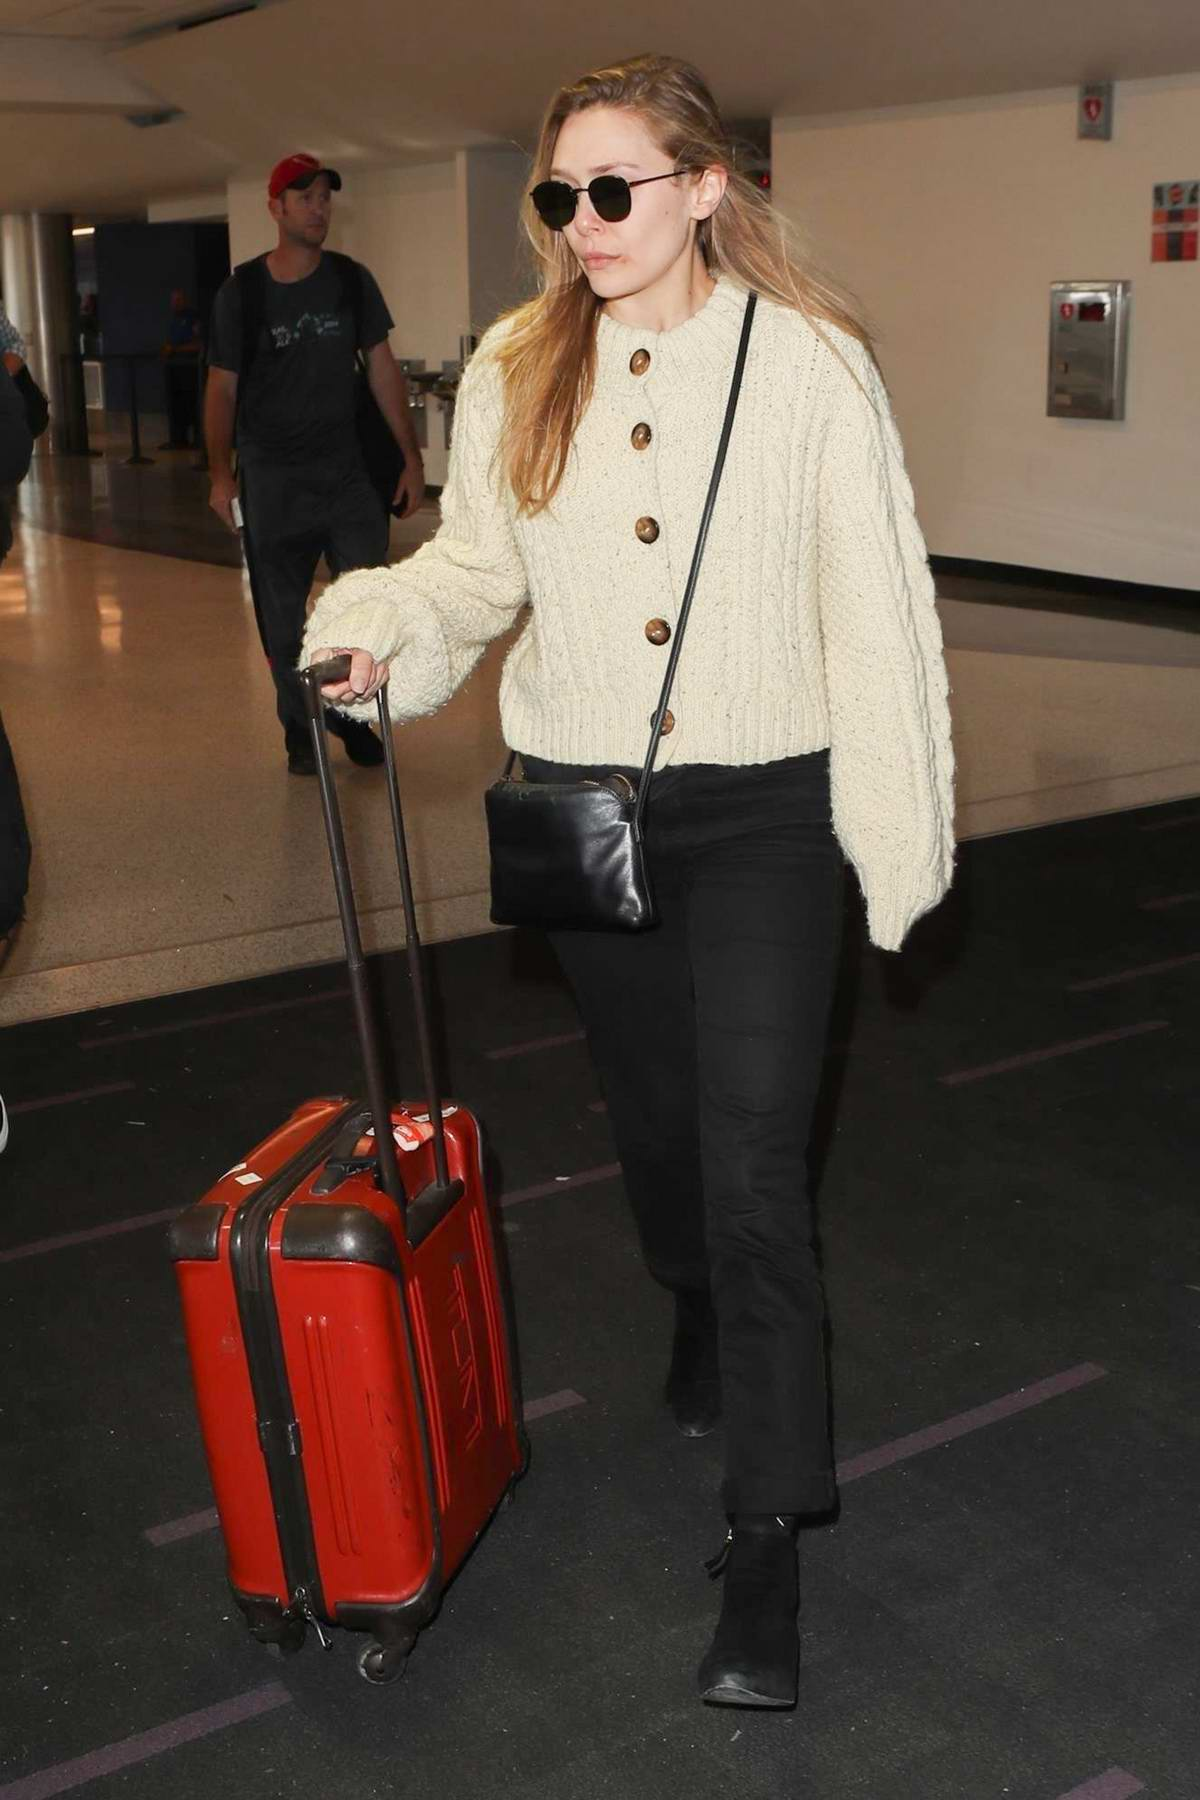 Elizabeth Olsen dressed in a cream sweater and jeans touches down at LAX airport in Los Angeles